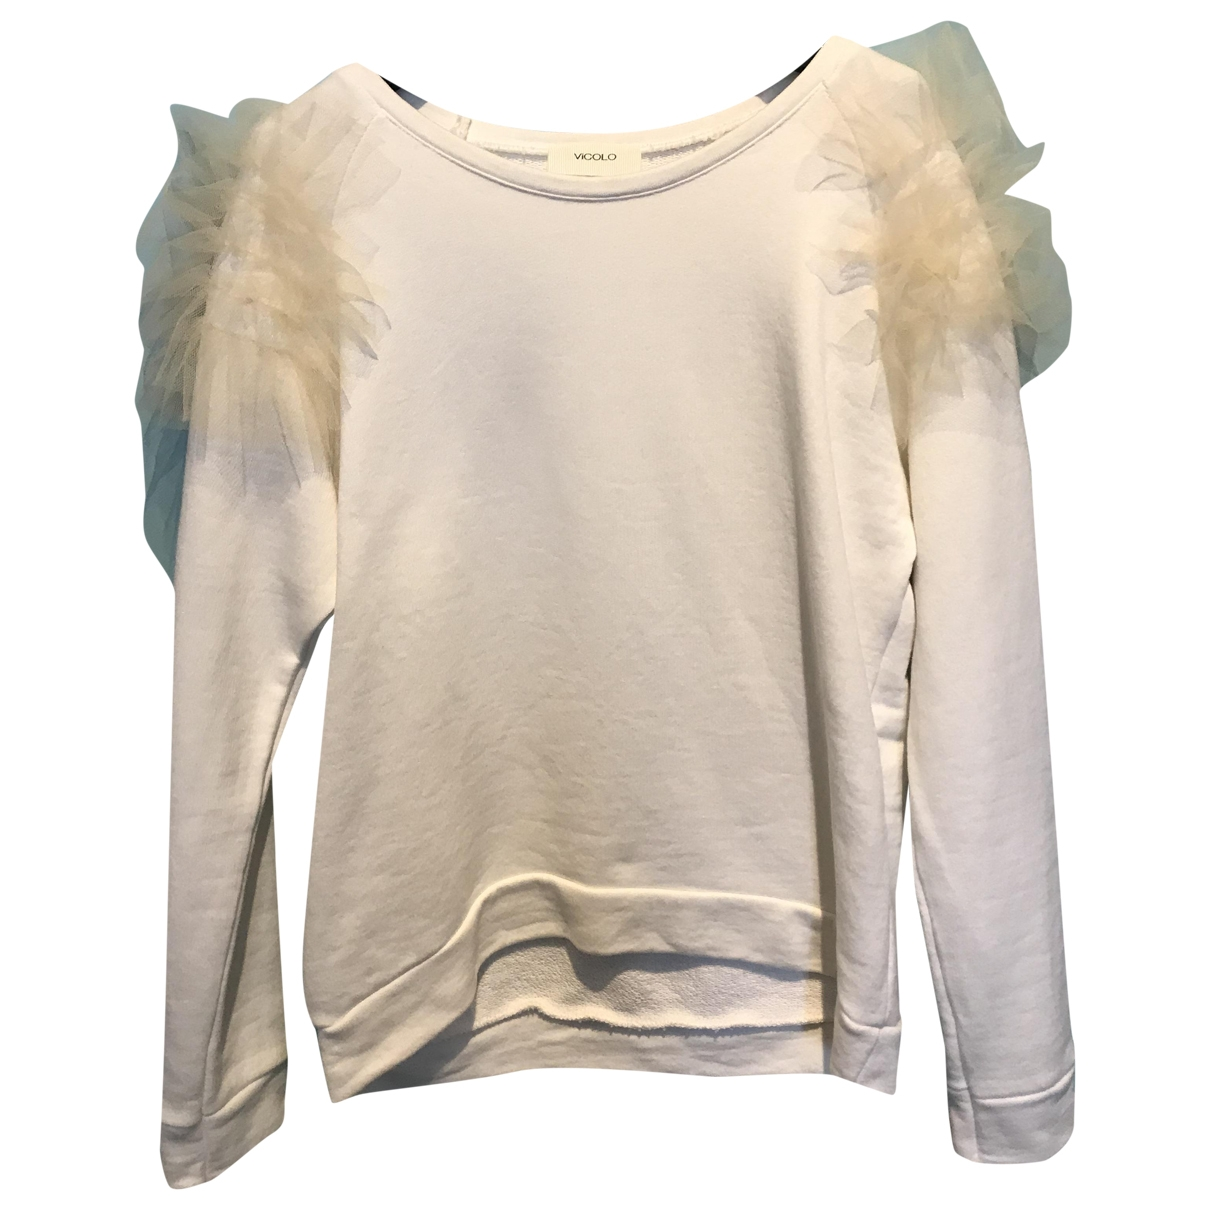 Vicolo \N Pullover in  Weiss Baumwolle